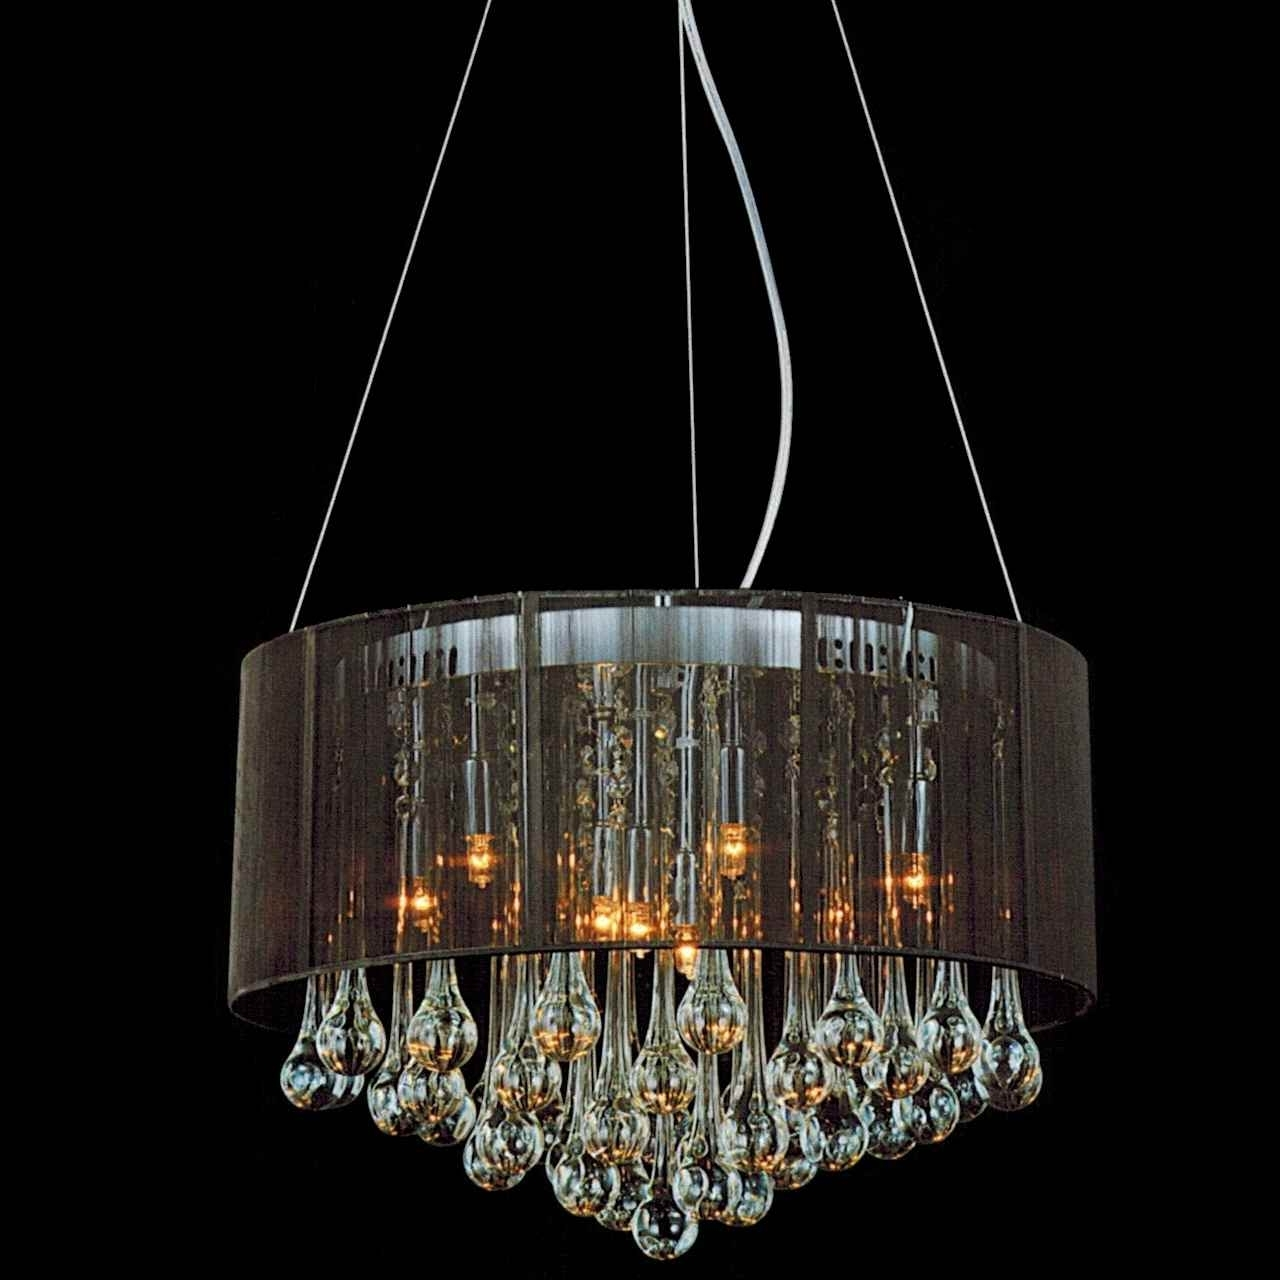 Current Chandelier: Marvellous Modern Rustic Chandelier Farmhouse Kitchen With Regard To Chandeliers With Black Shades (View 17 of 20)